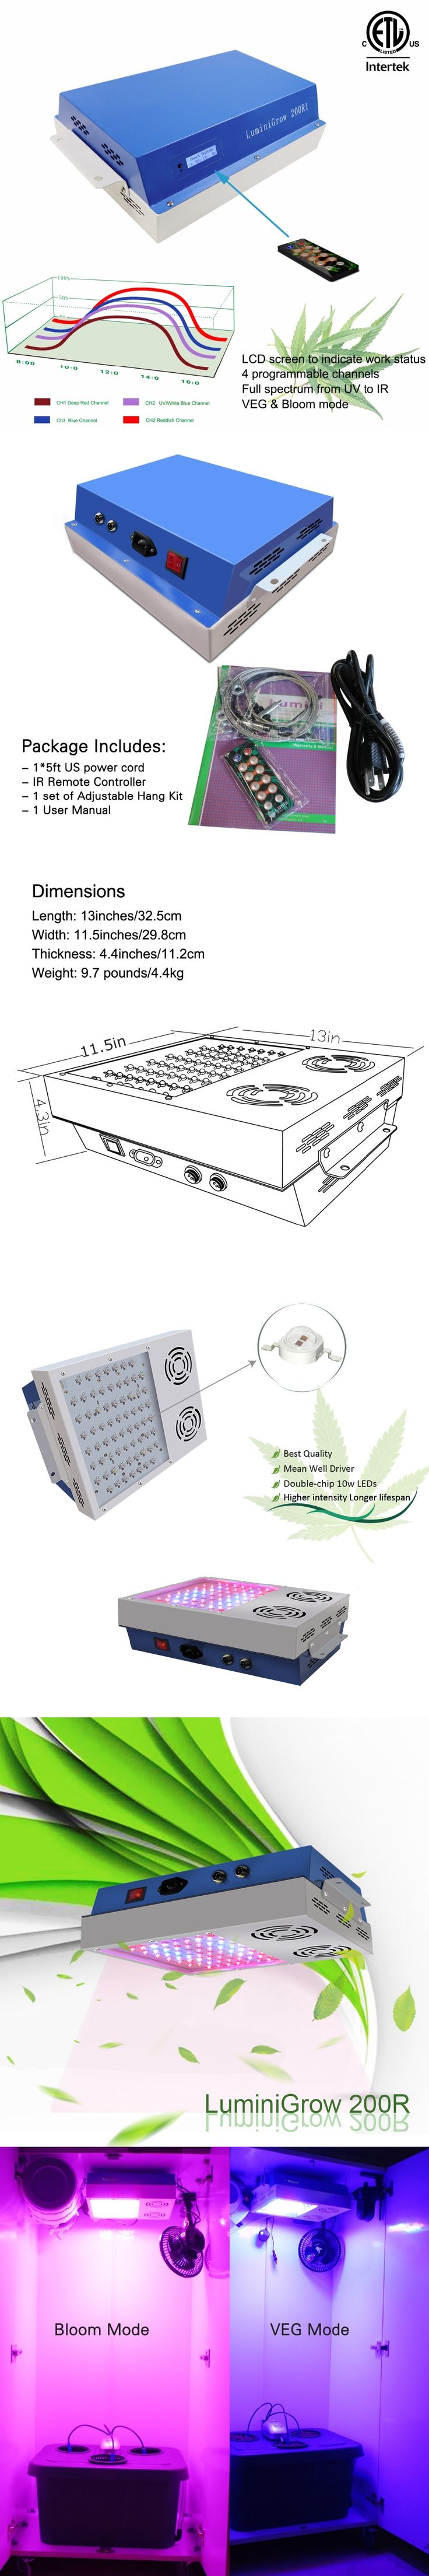 640W Full Spectrum Grow Light Led Greenhouse Horticulture Indoor Dimmable Diy Plant Lamp Veg And Flower For Hydroponic System